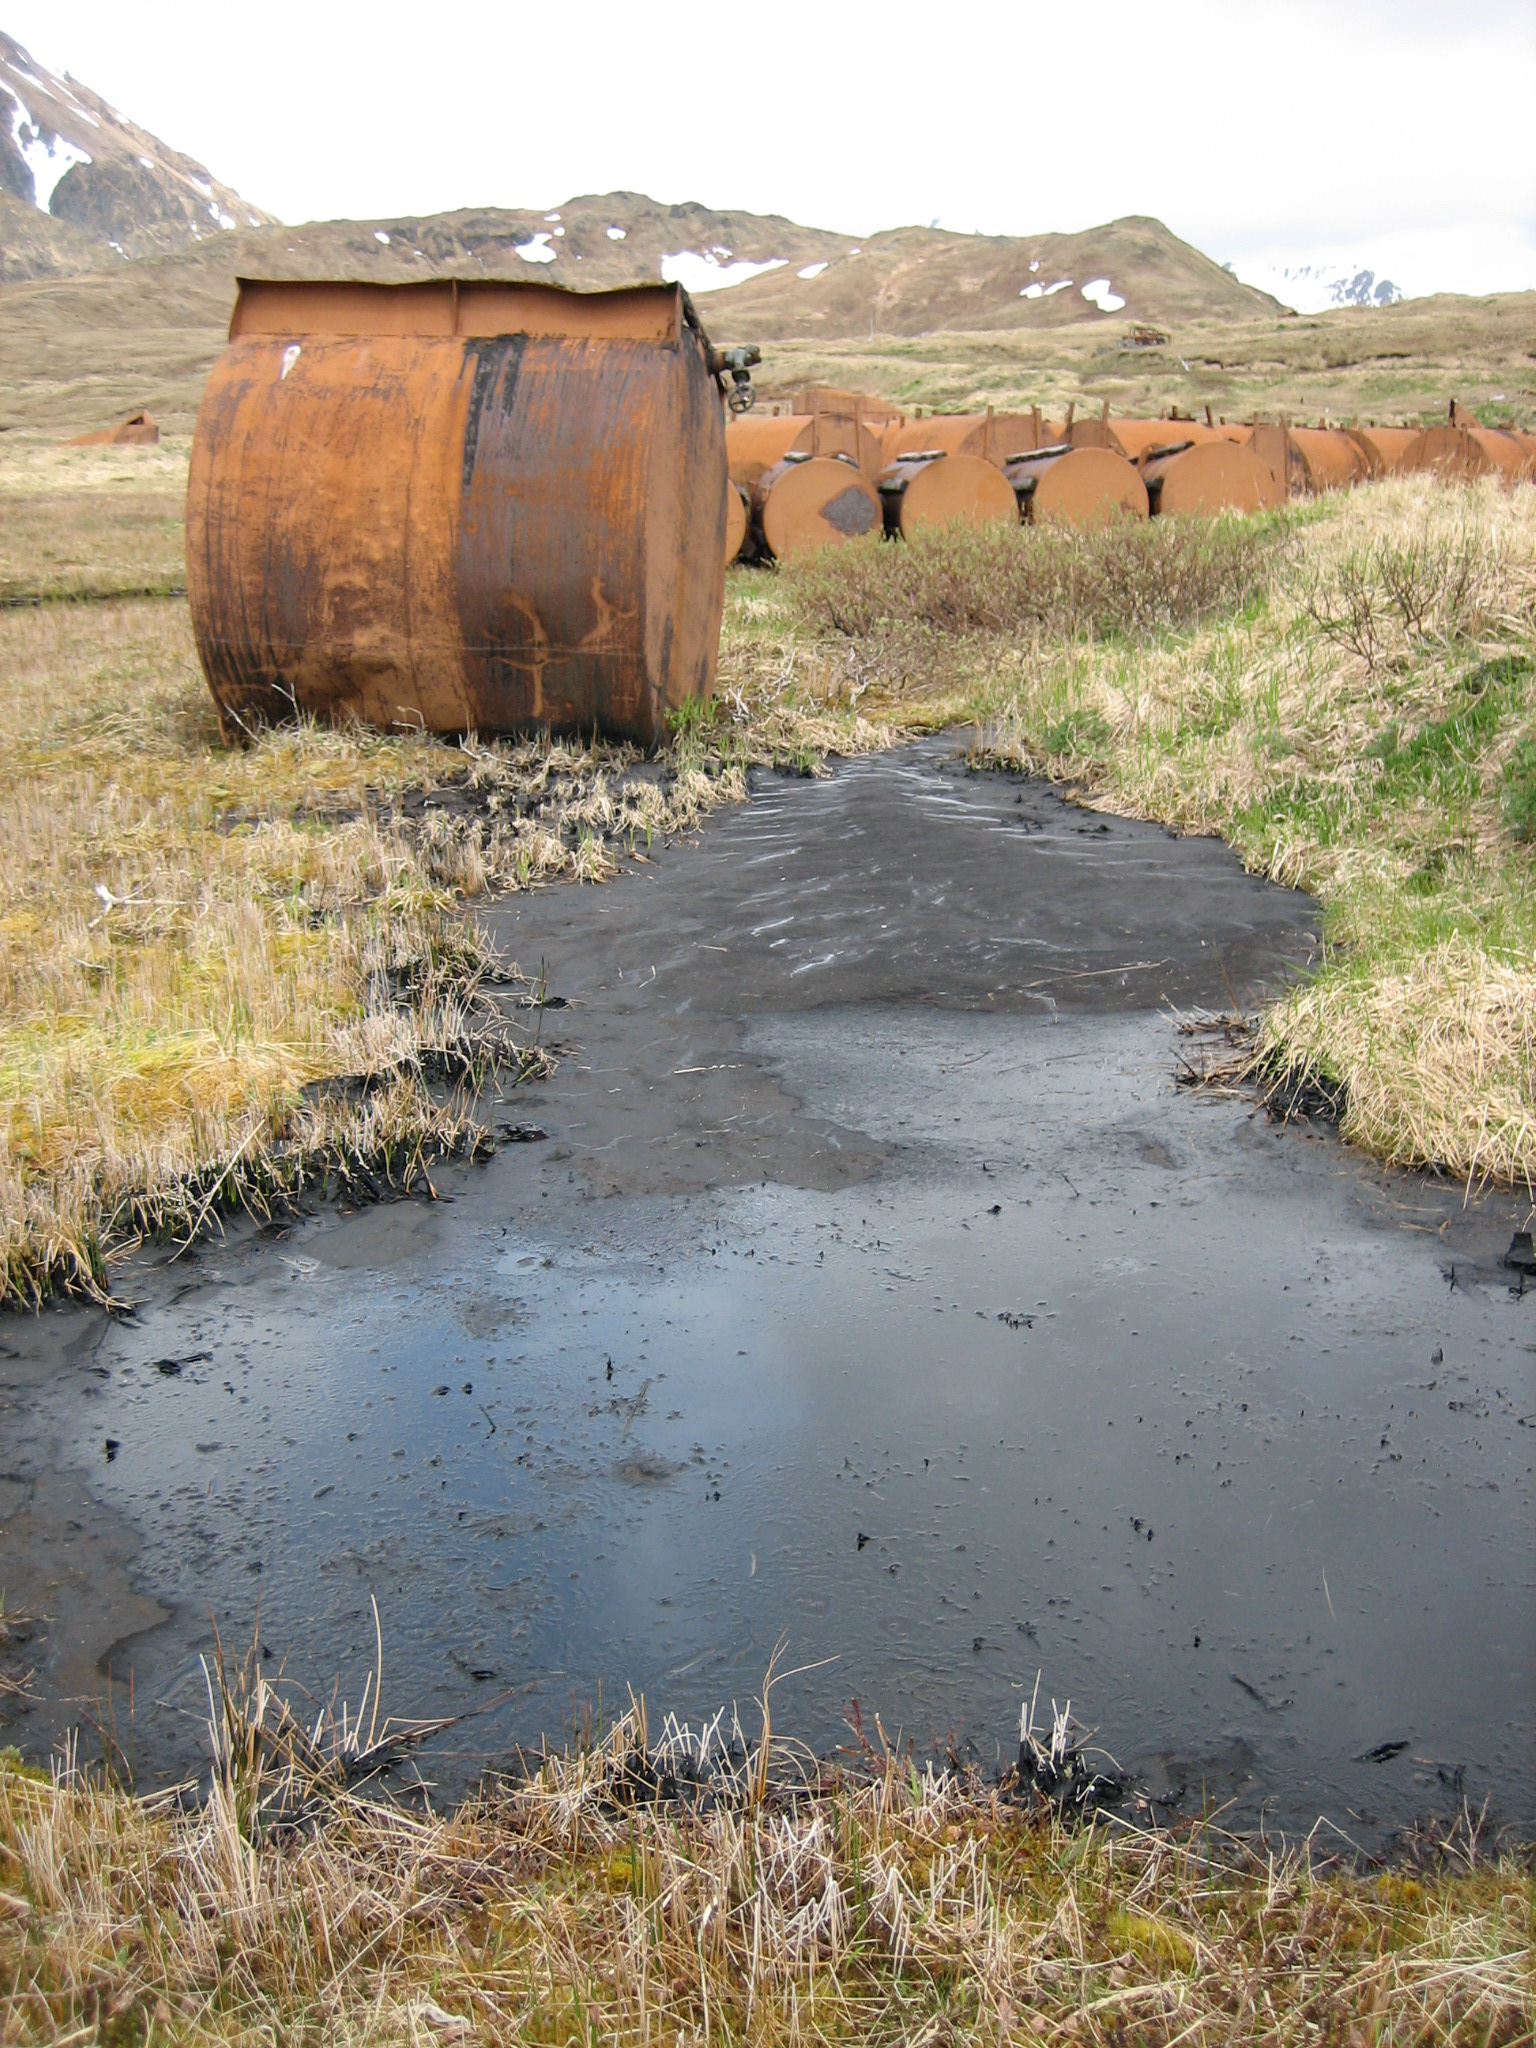 Attu-Fuel-tank-basin-single-tank-spill-1